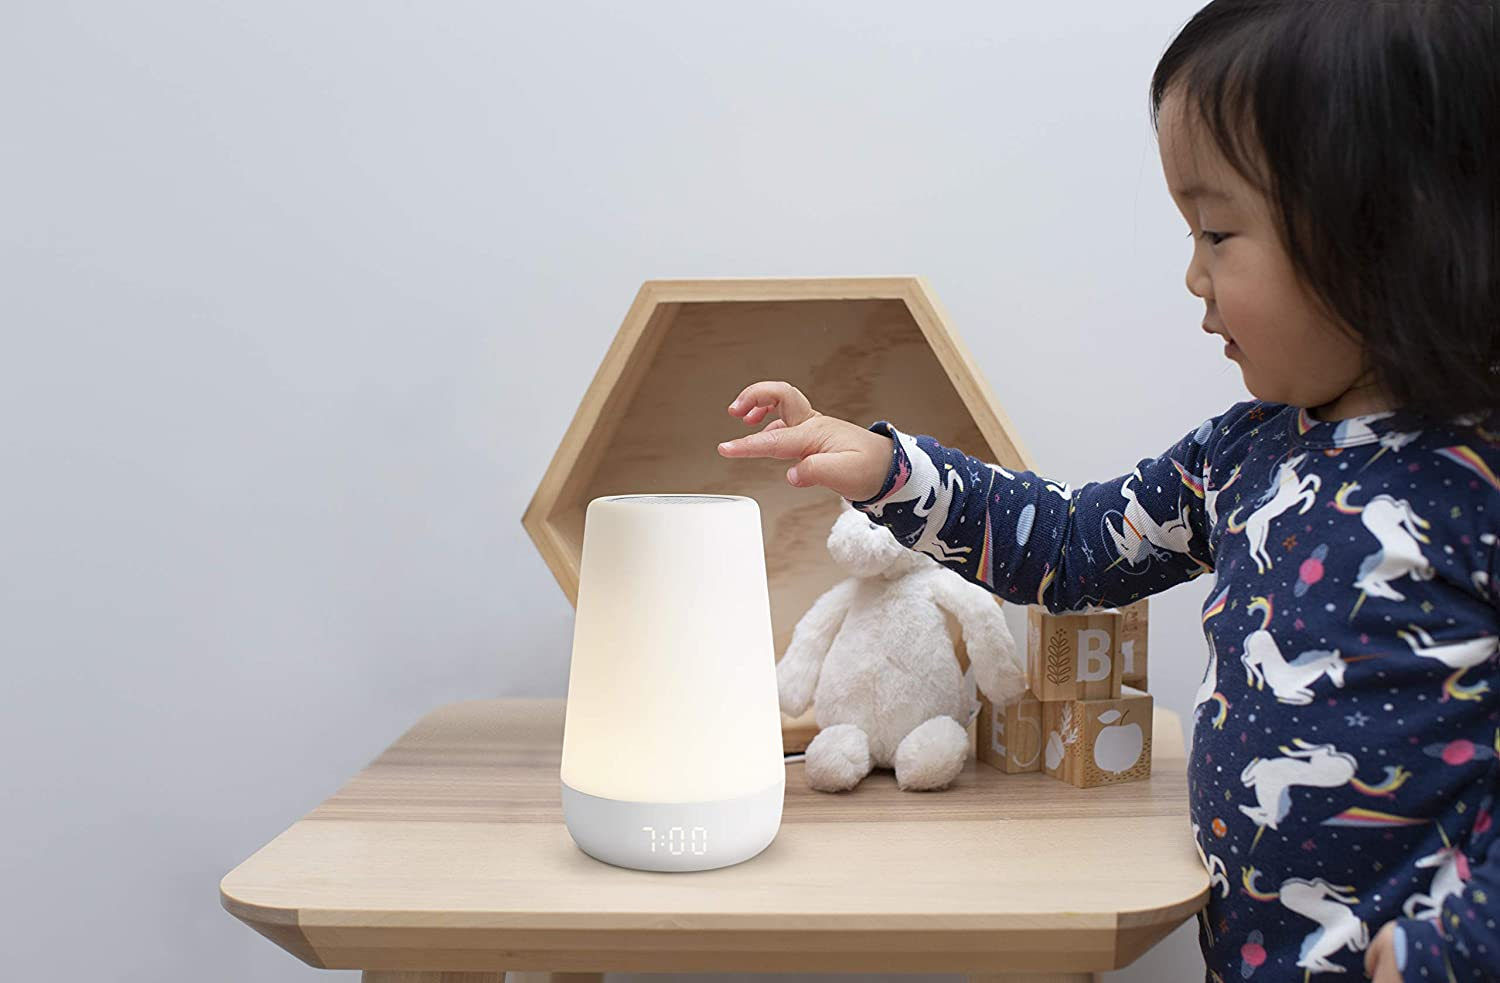 Toddler Sleep Trainer Night Light Time-to-Rise Plus Audio Monitor Hatch Rest+ Baby Sound Machine Nightlight White Noise Soother Kids Alarm Clock